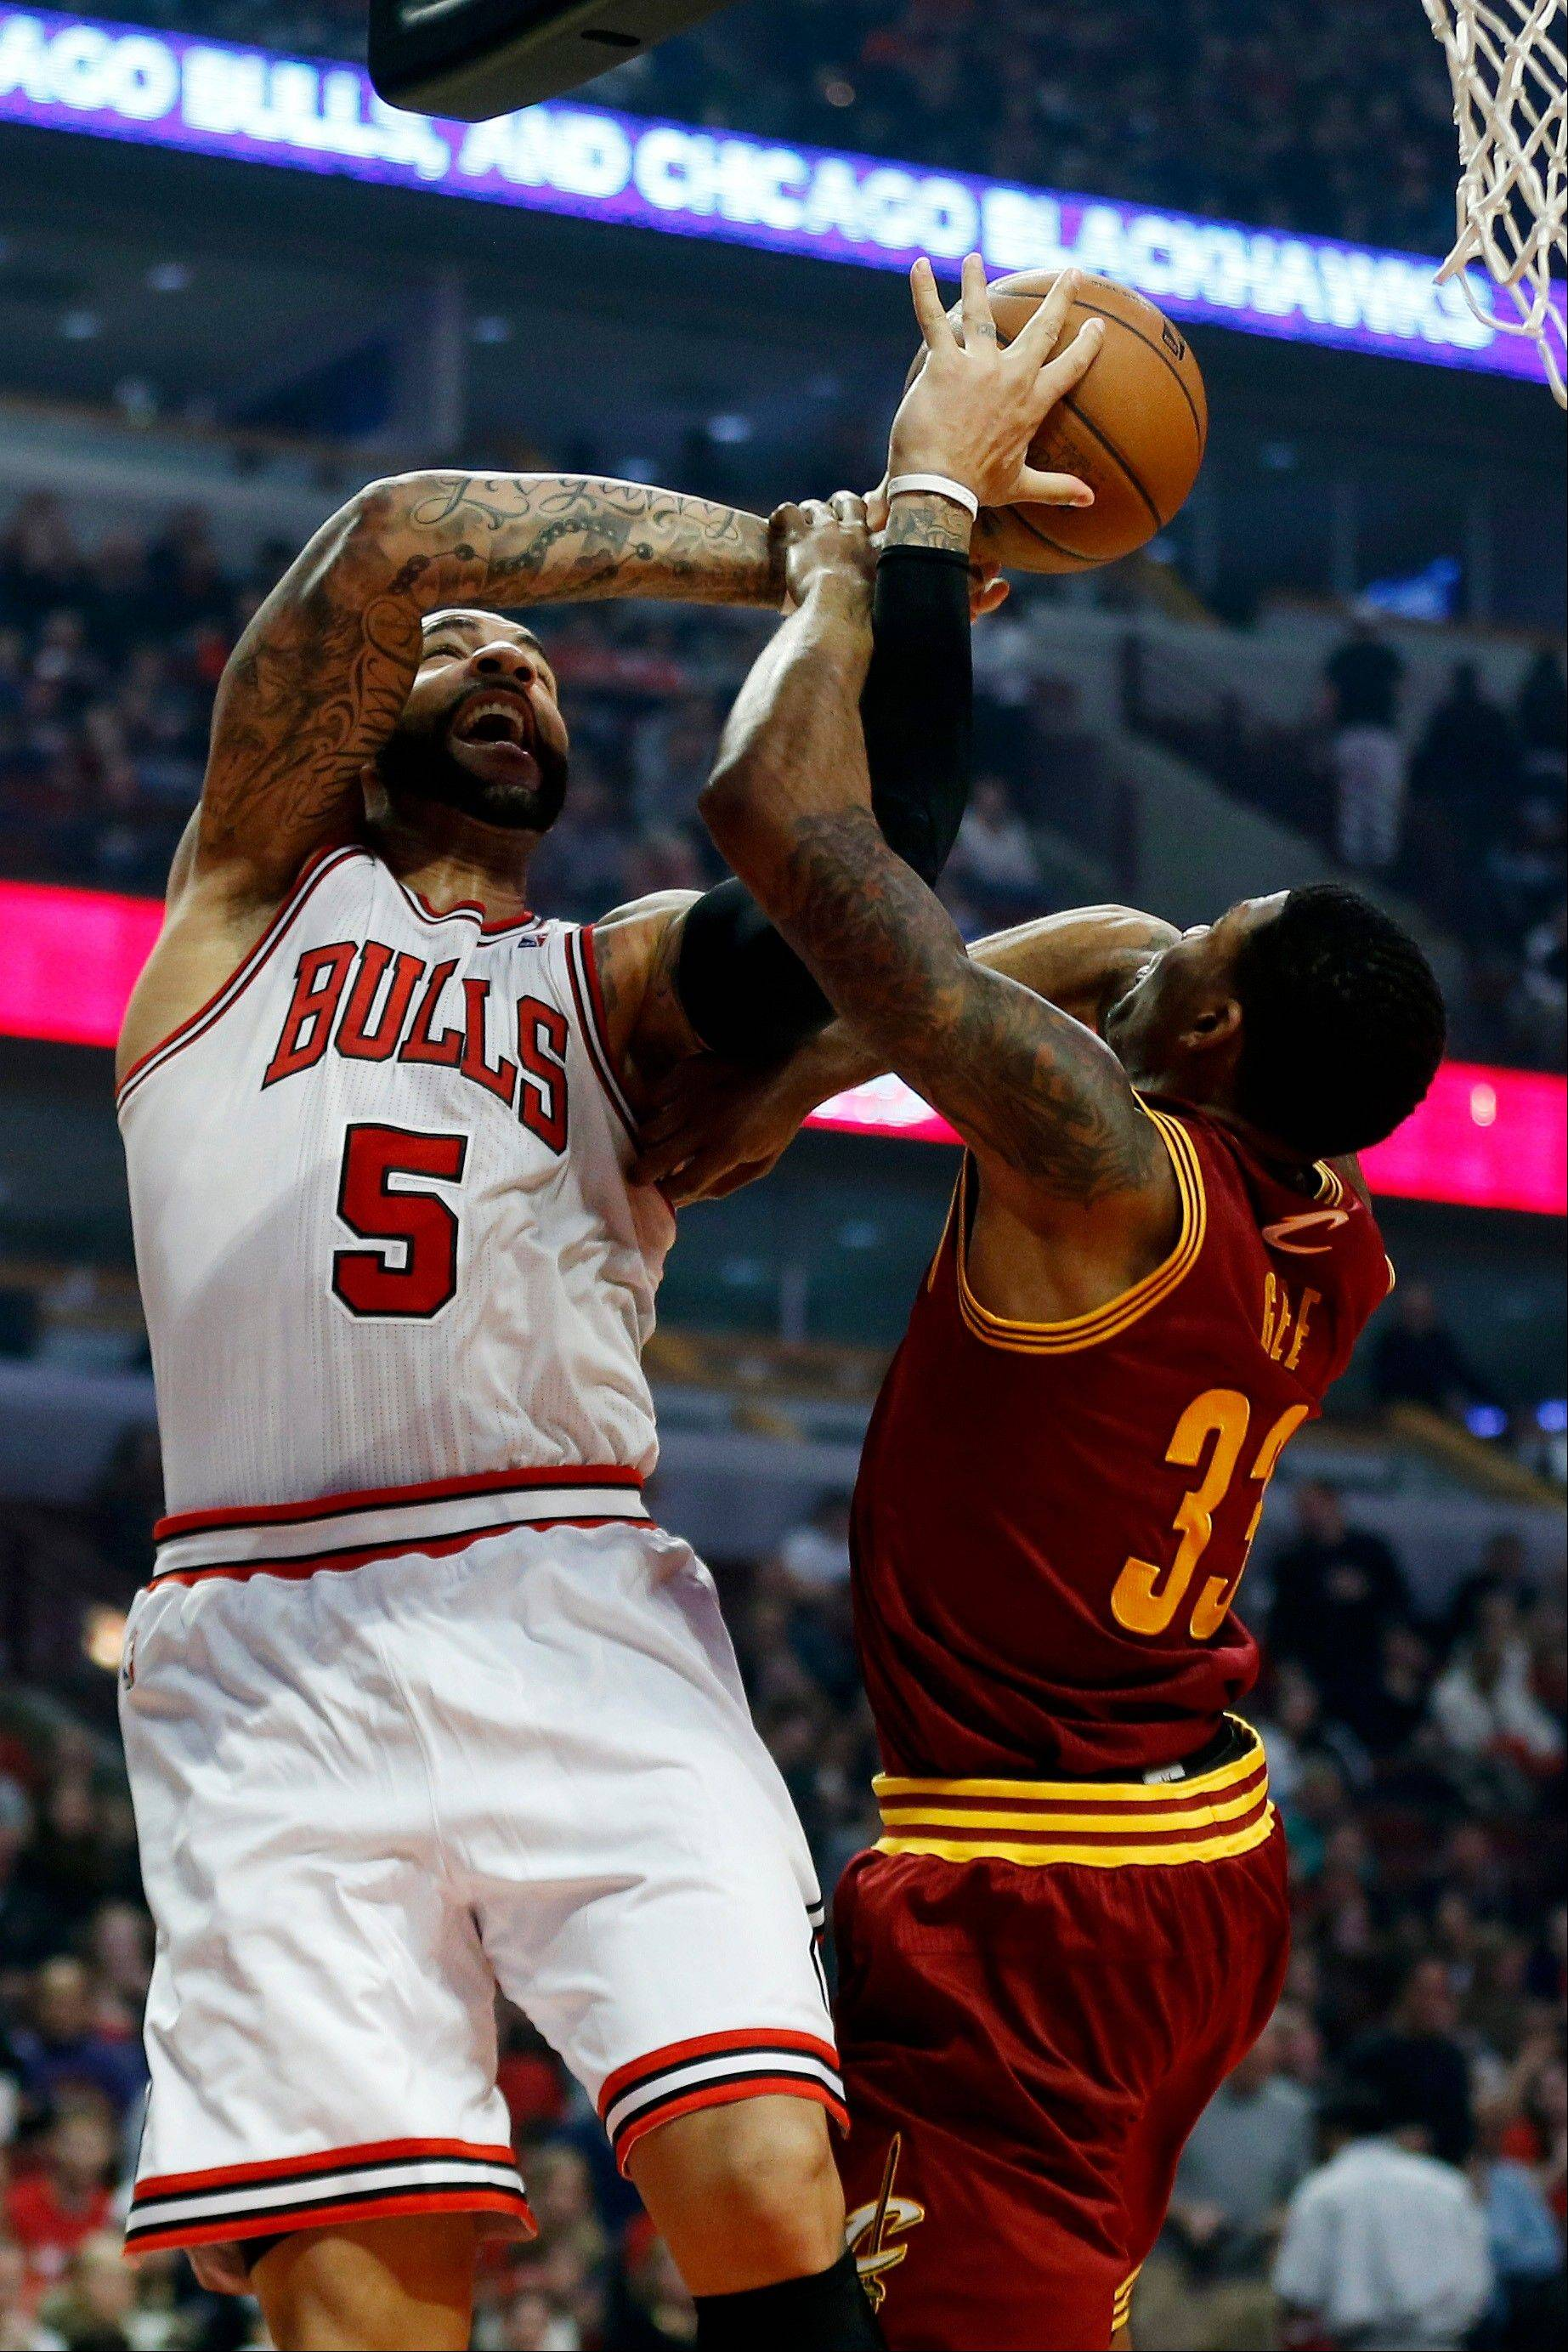 Bulls forward Carlos Boozer draws a foul from Cleveland Cavaliers forward Alonzo Gee during the second half of Saturday�s game in Chicago.